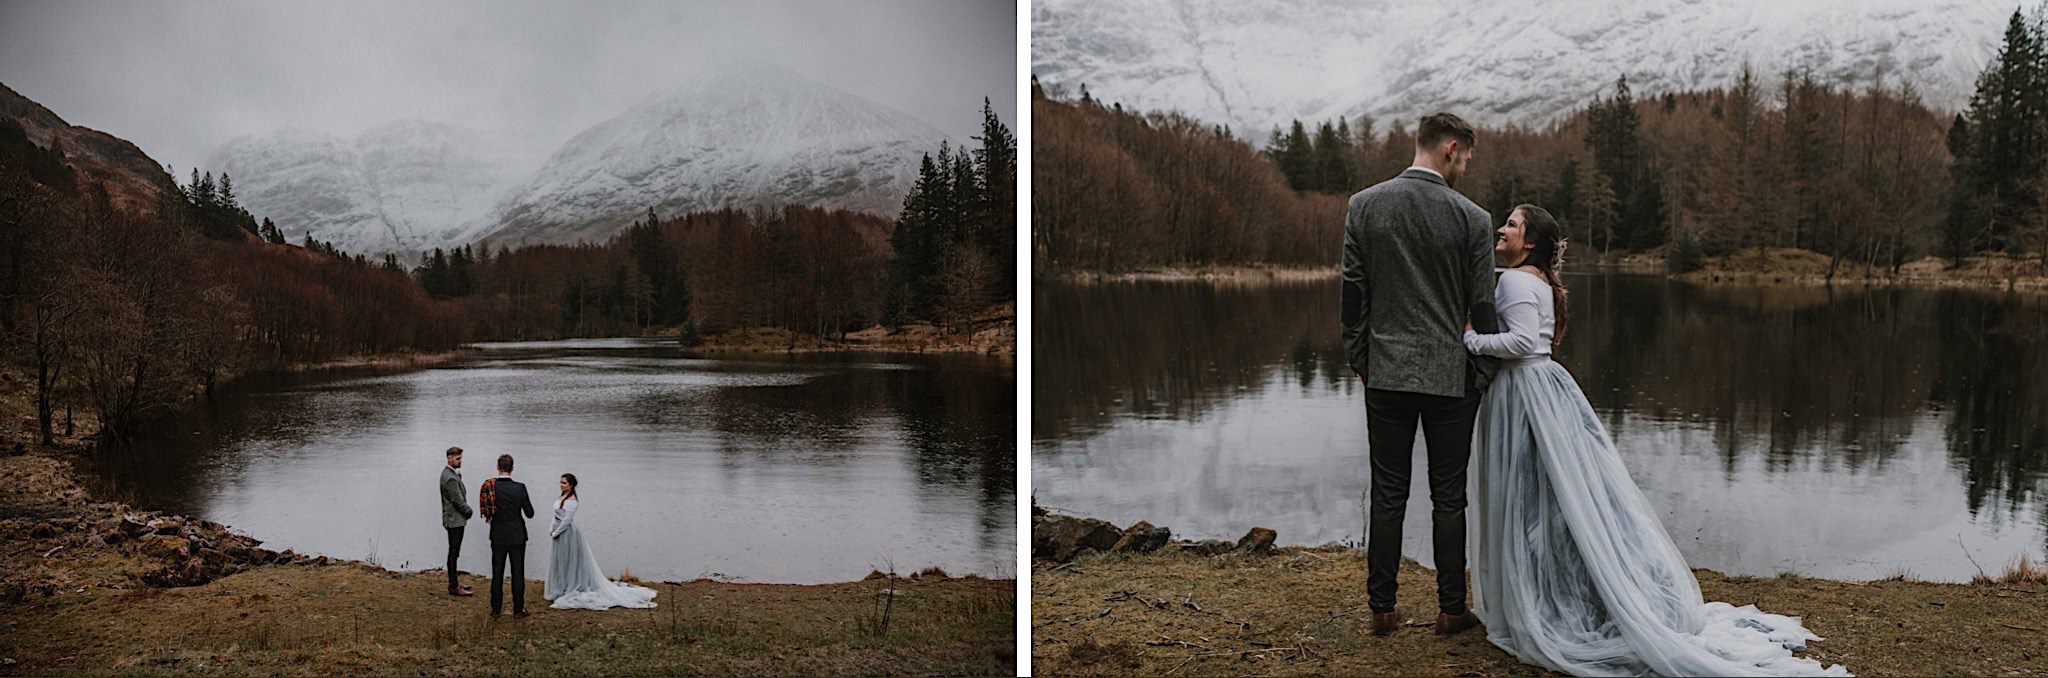 Glencoe elopement ceremony by loch with snow covered mountains in the distance